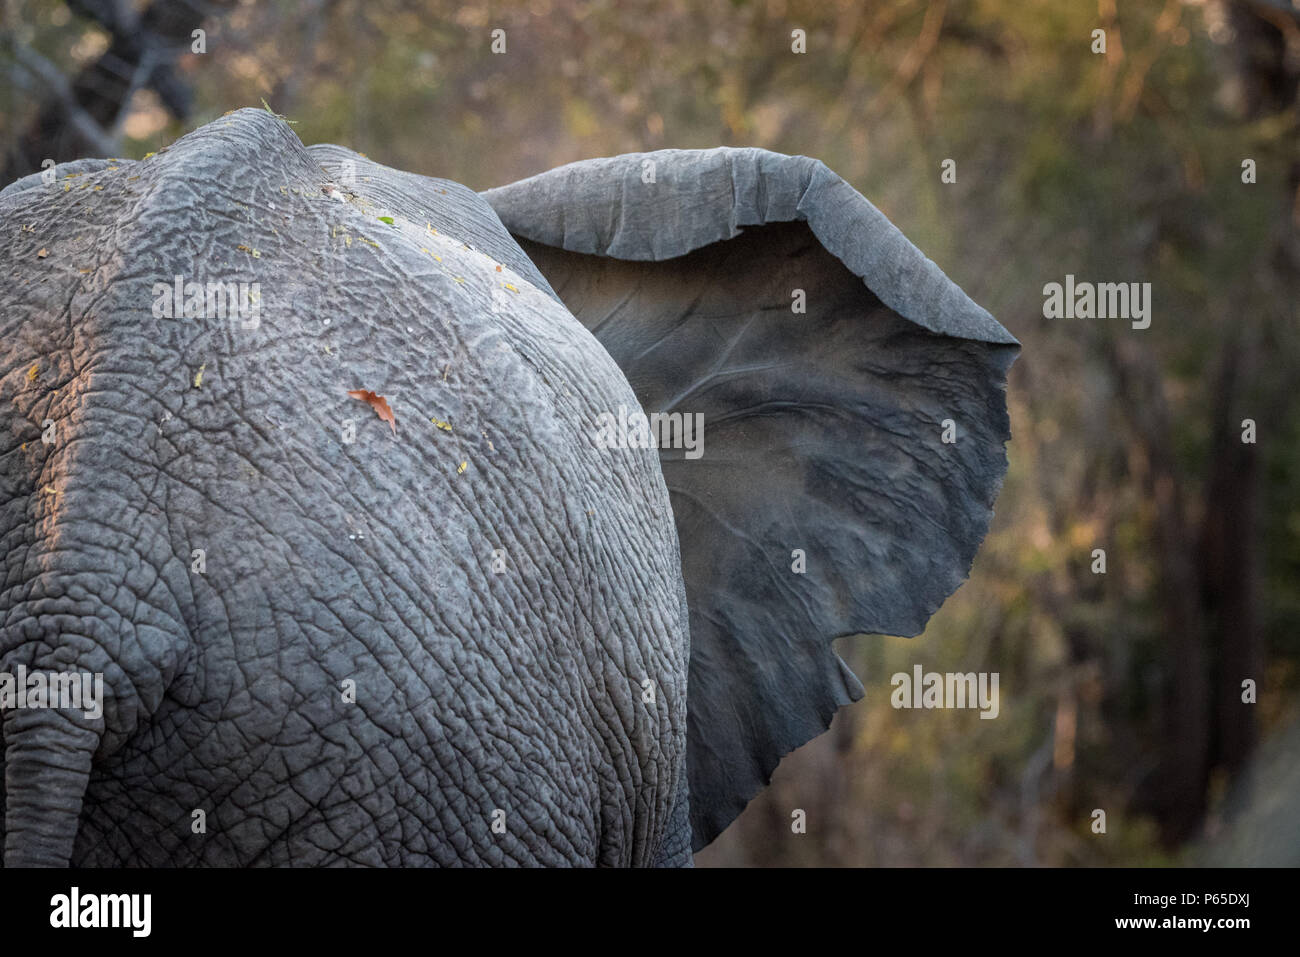 Elephant with ear out, viewed from behind - Stock Image